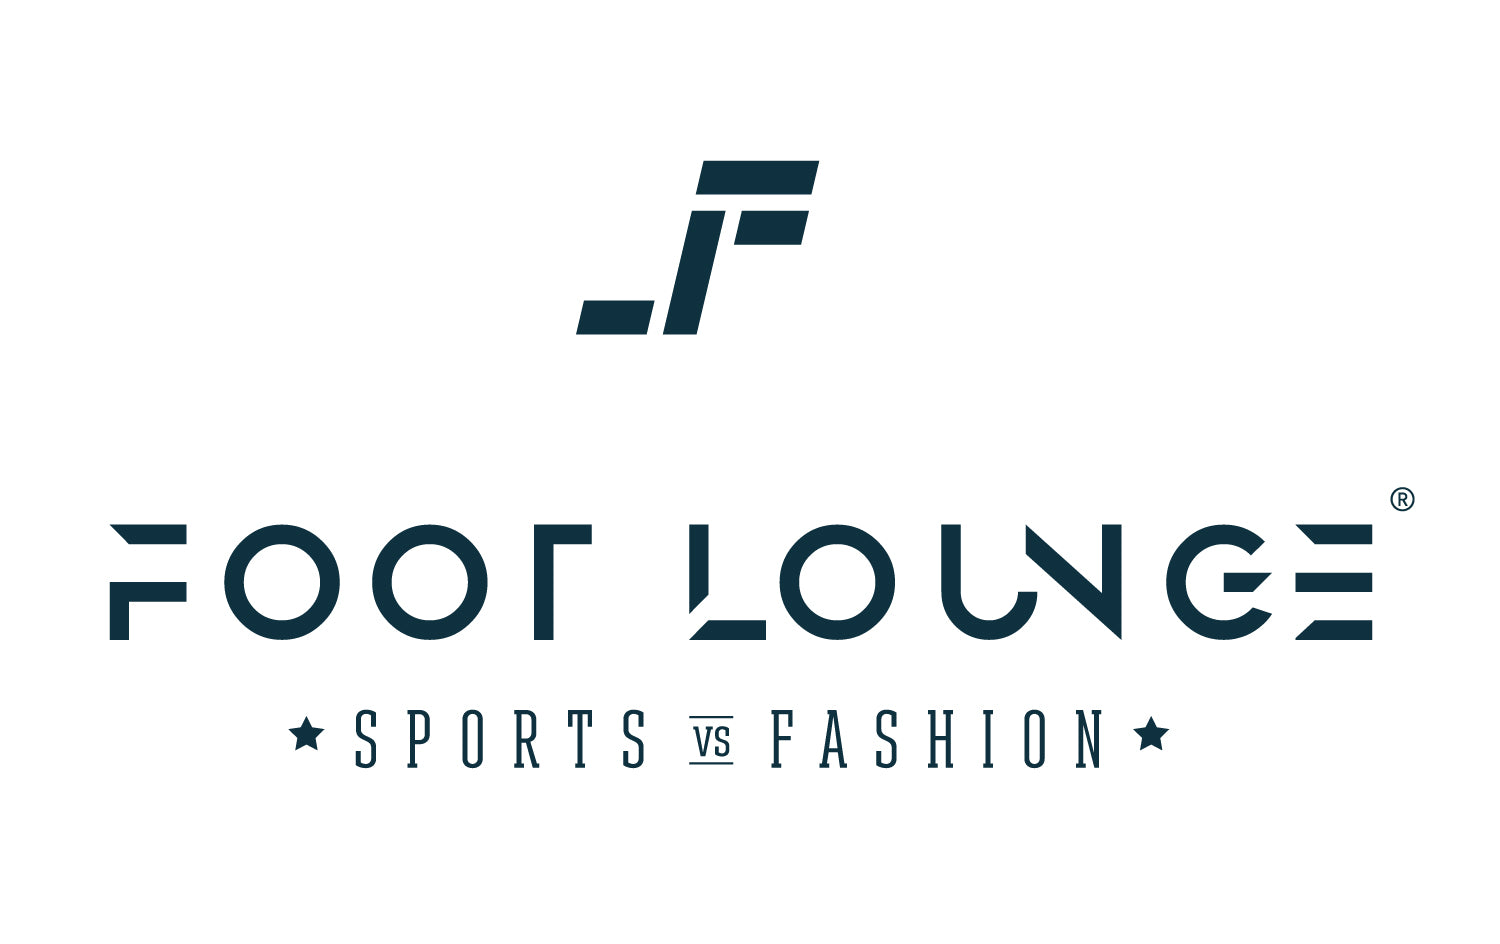 www.footlounge.in